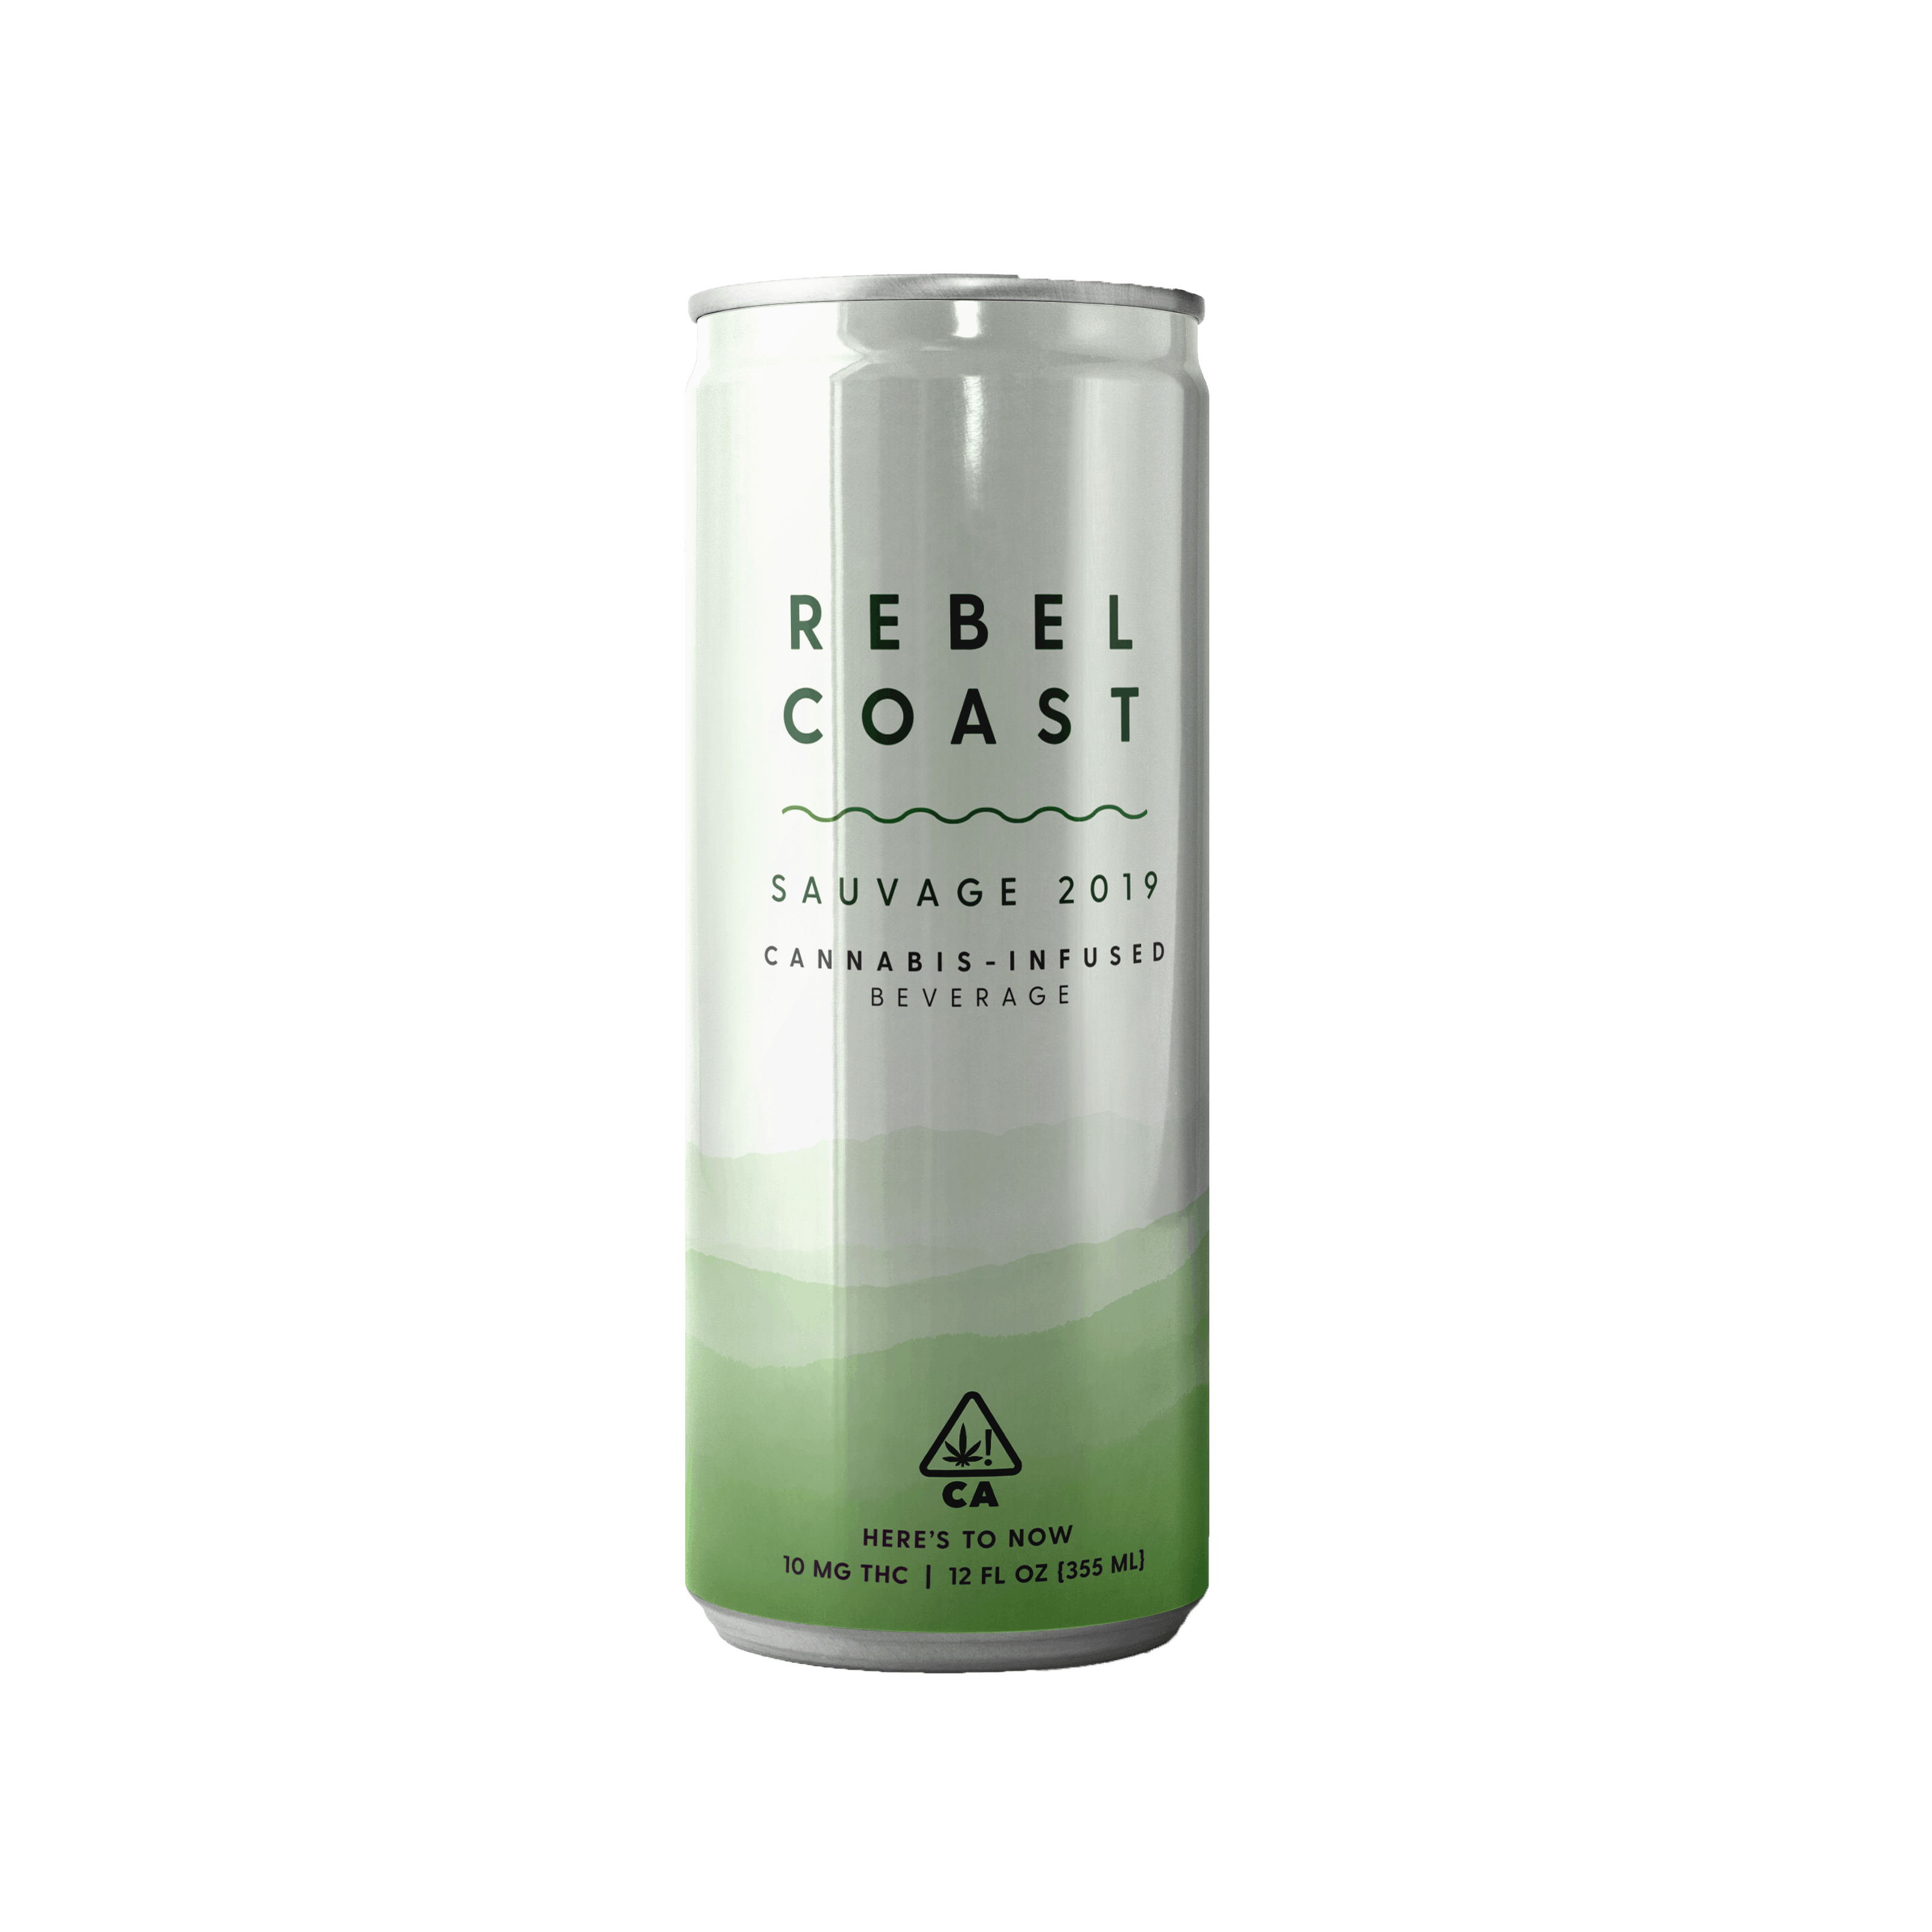 Rebel Coast Cannabis Infused Sauvage Slim Can